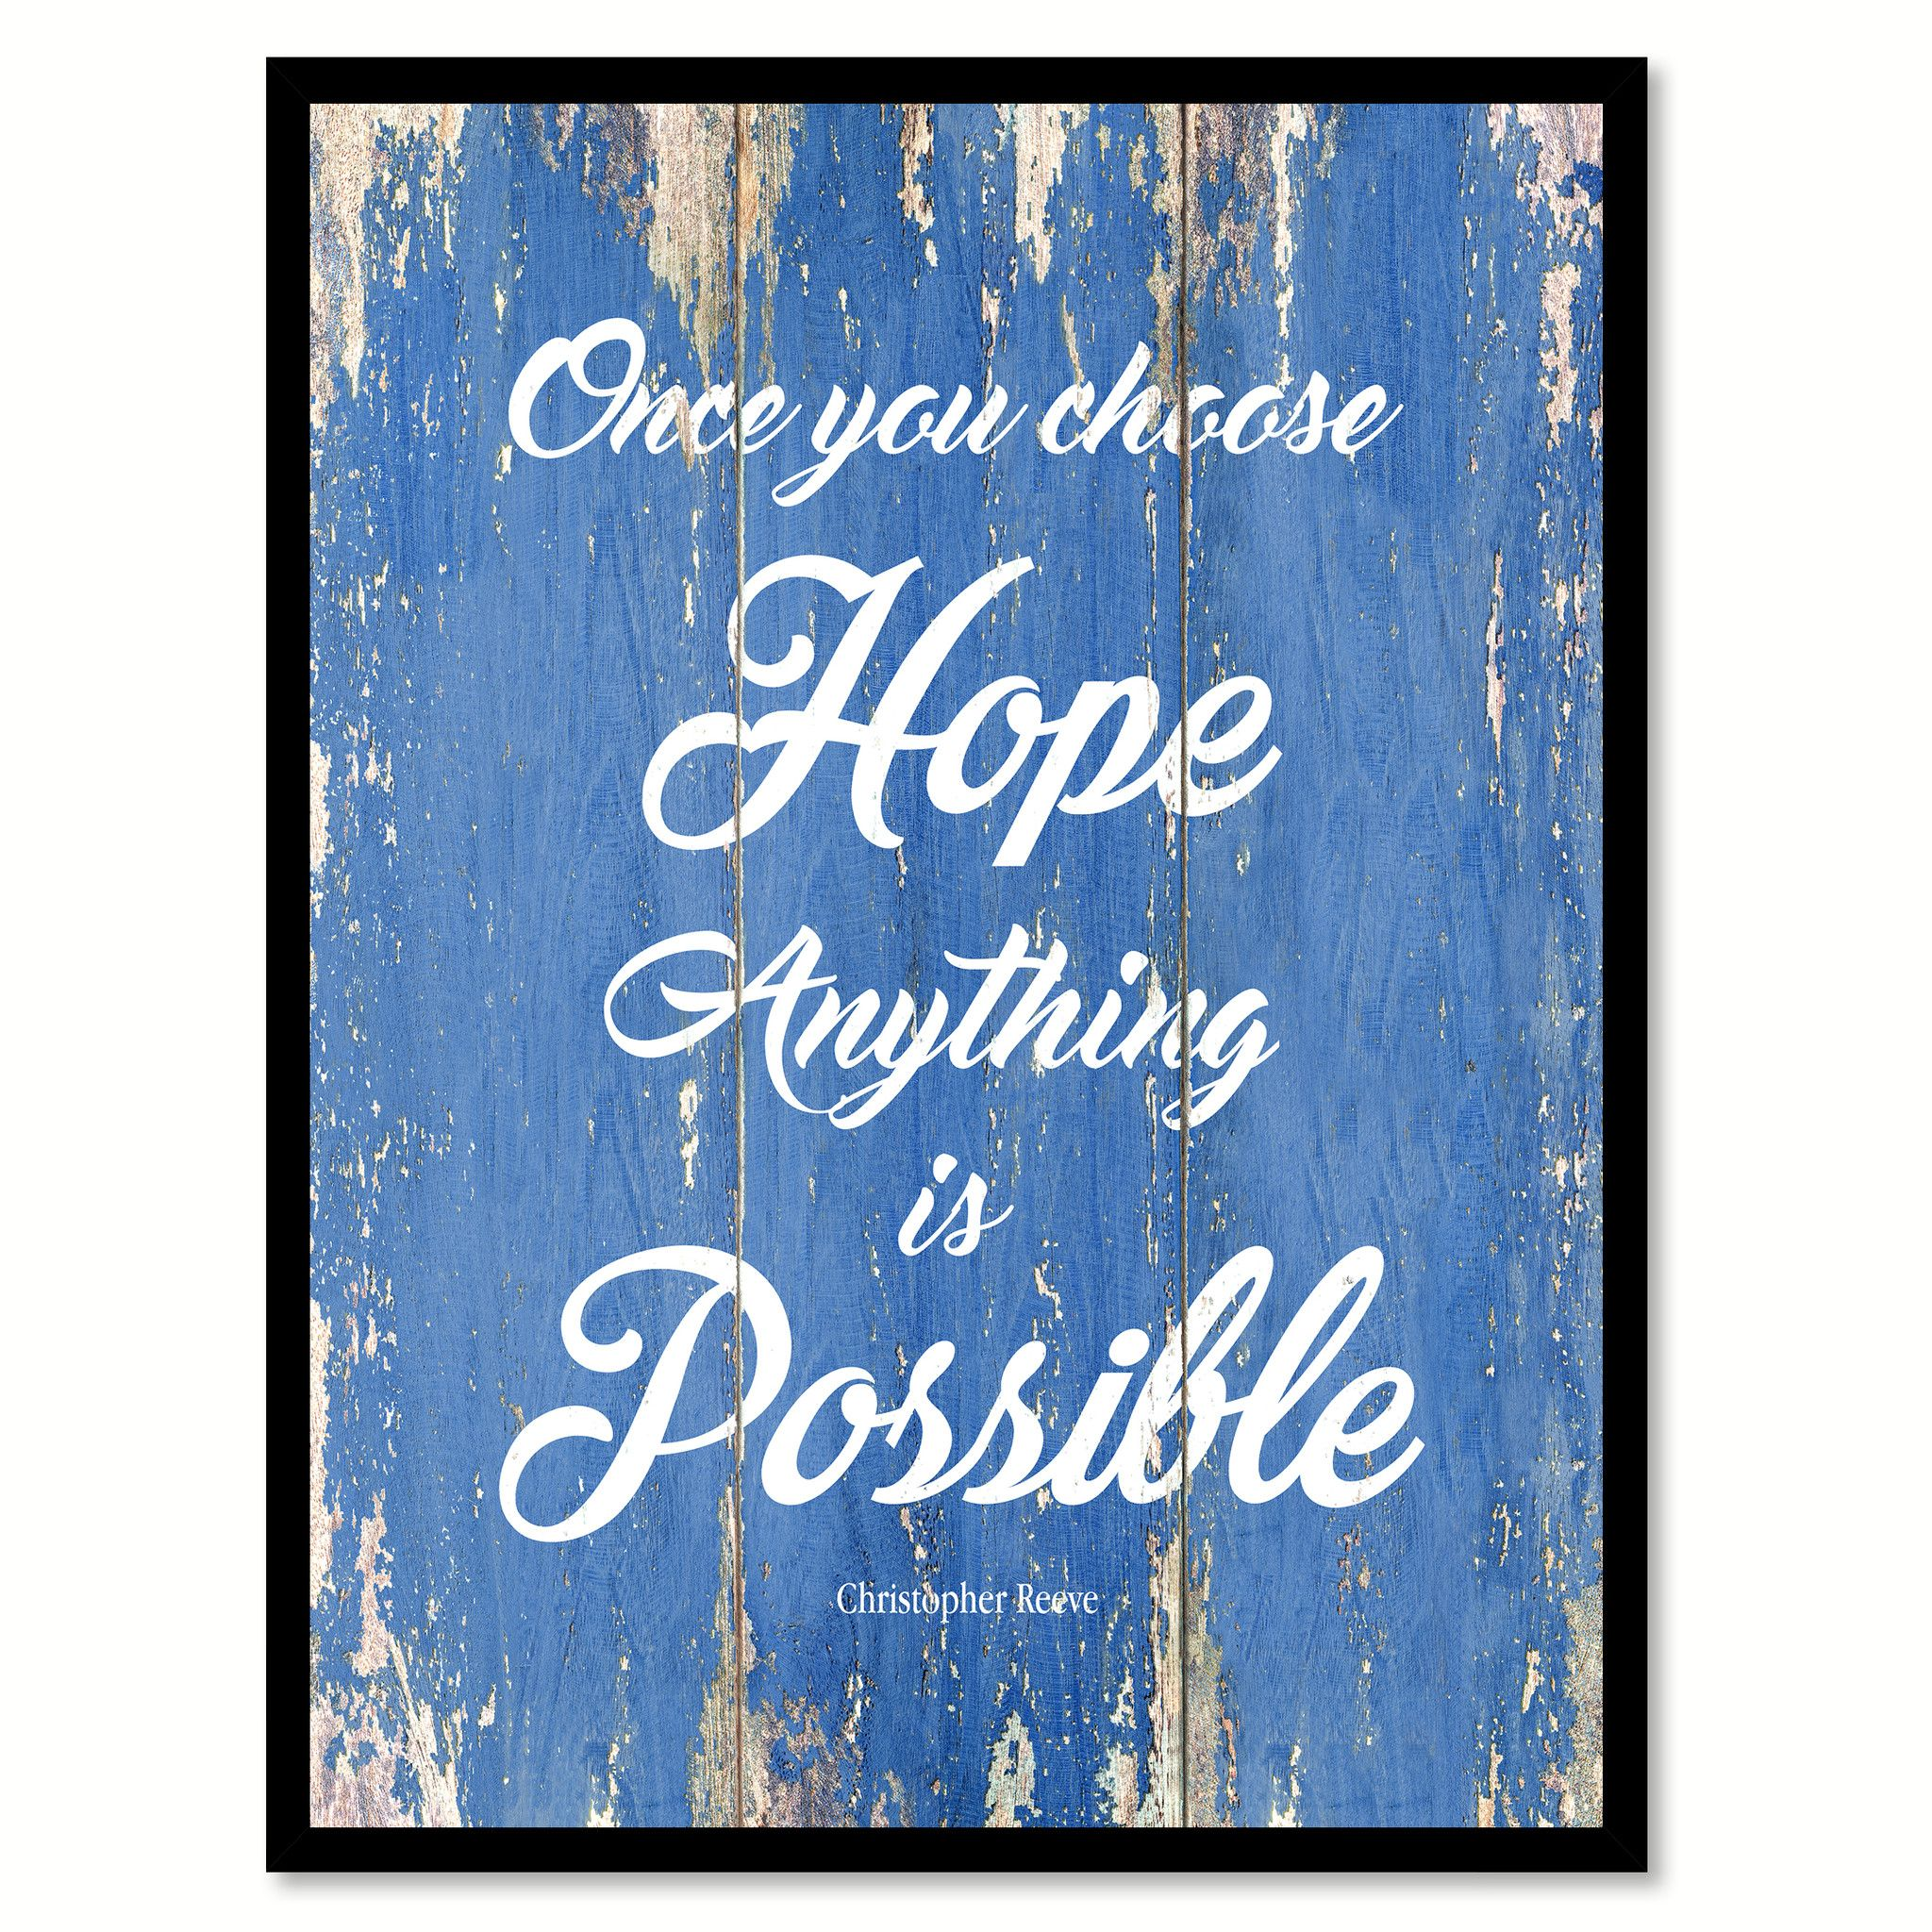 Once You Choose Hope Christopher Reeve Inspirational Quote